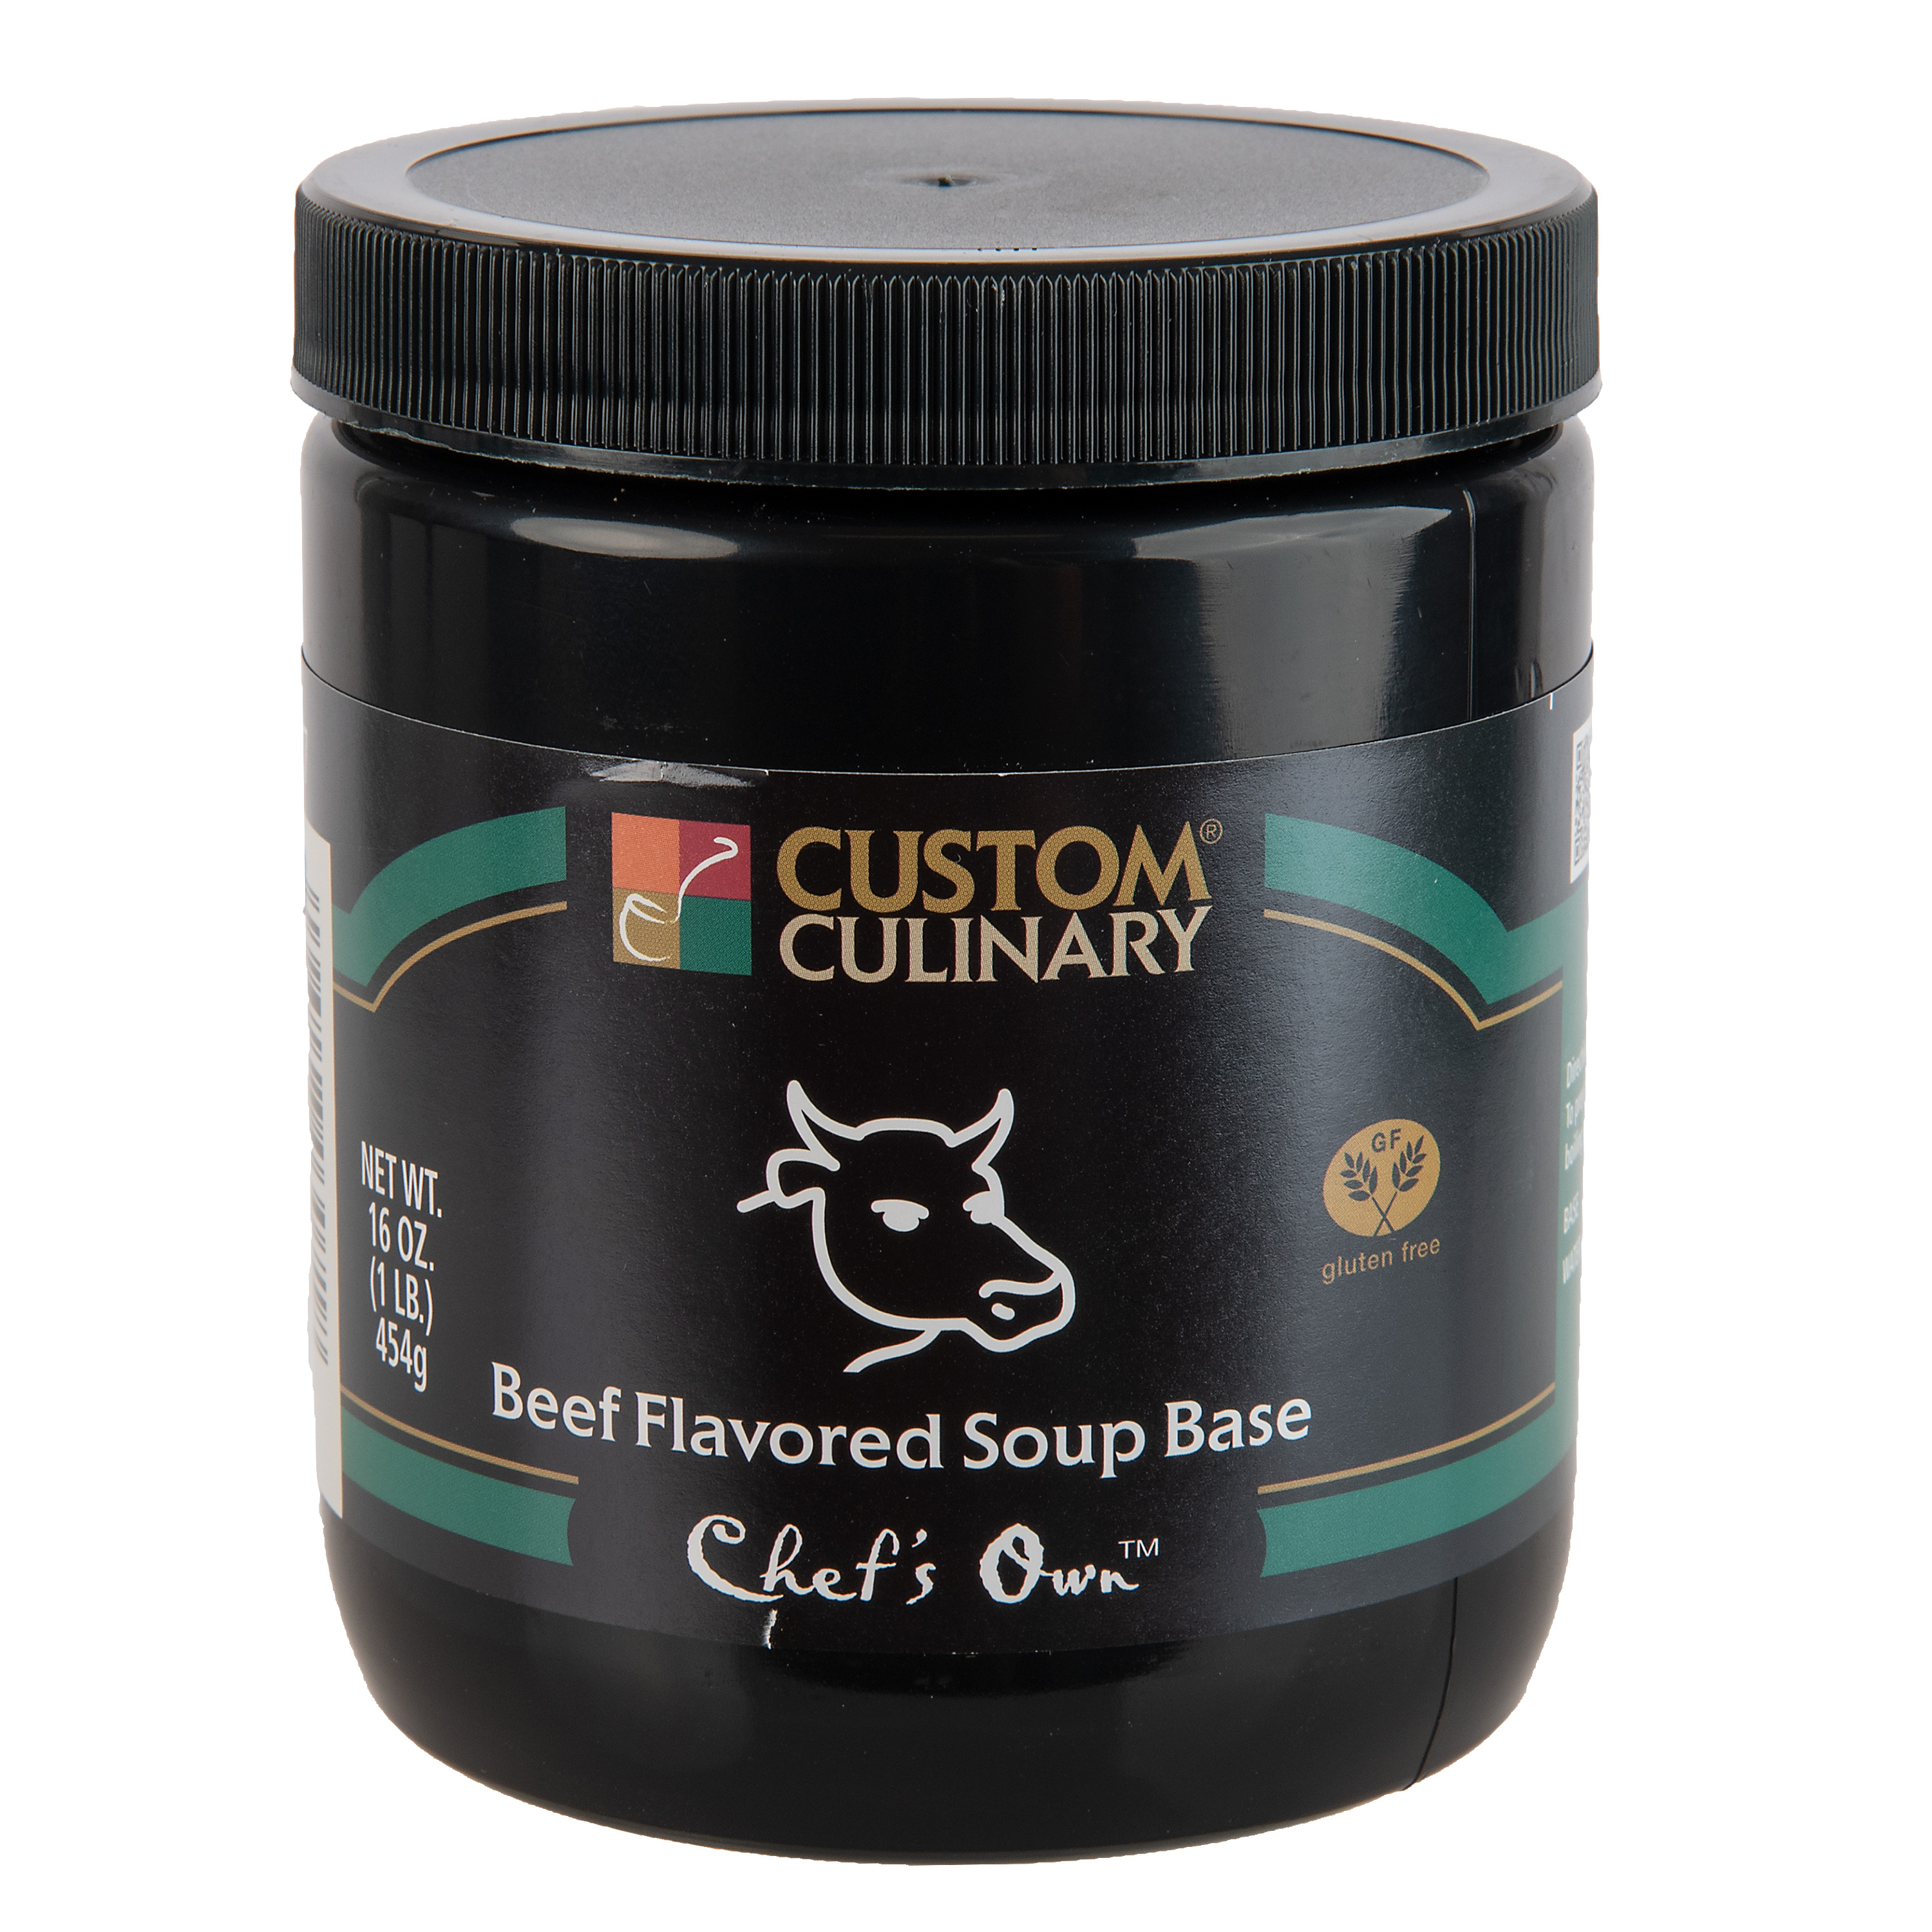 0307 - Chefs Own Beef Flavored Soup Base